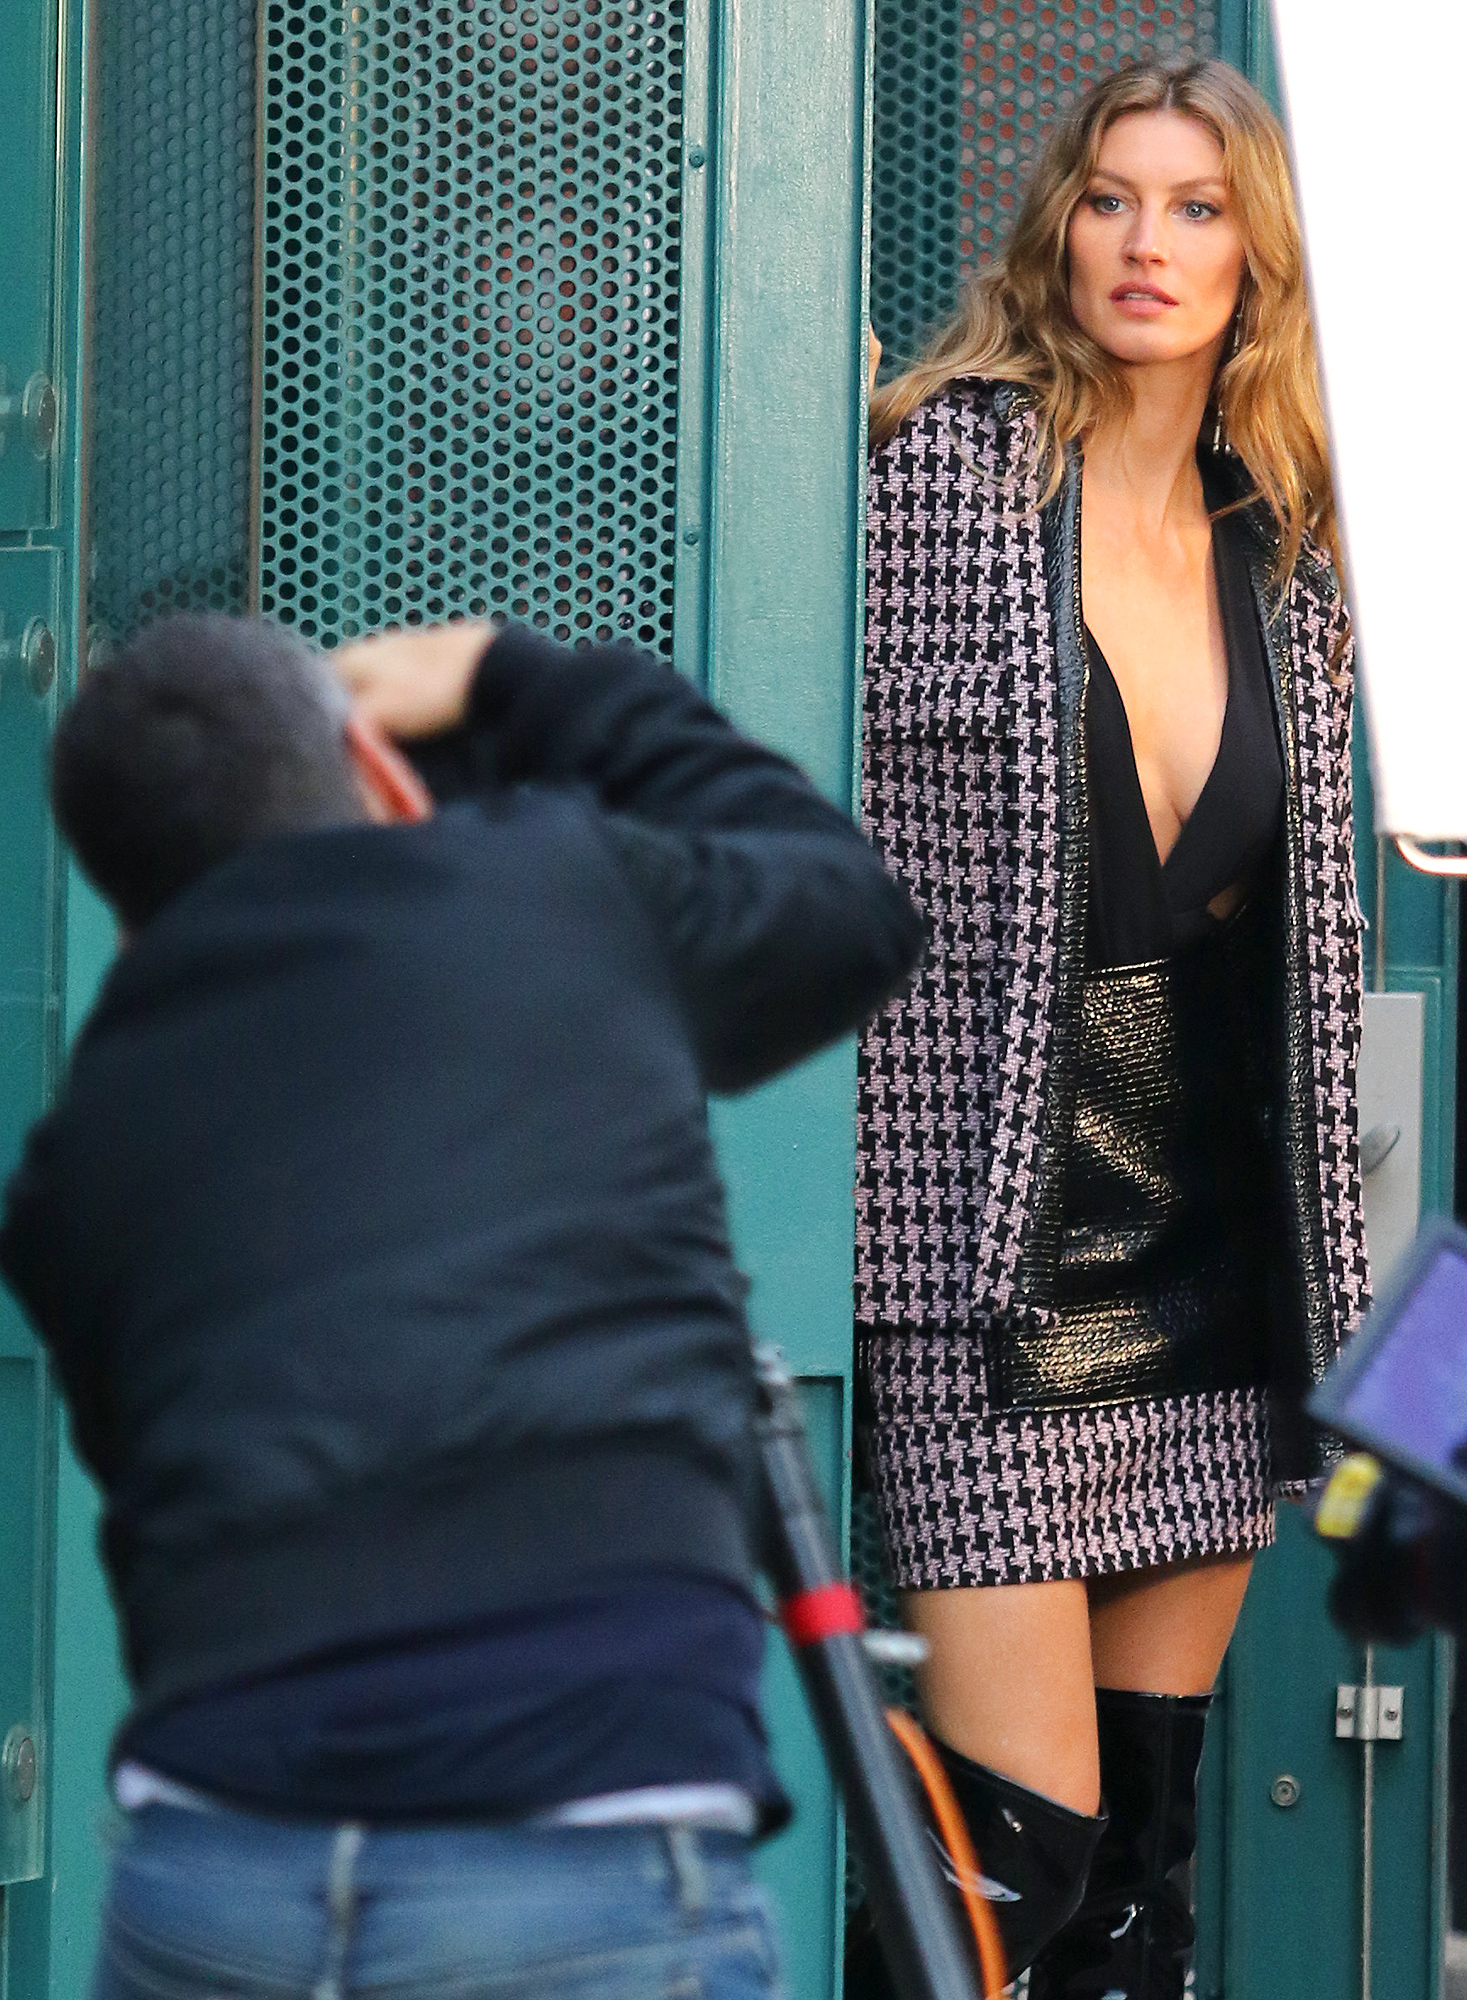 Gisele Bundchen back to modeling for a photoshoot on the streets of Brooklyn, NY